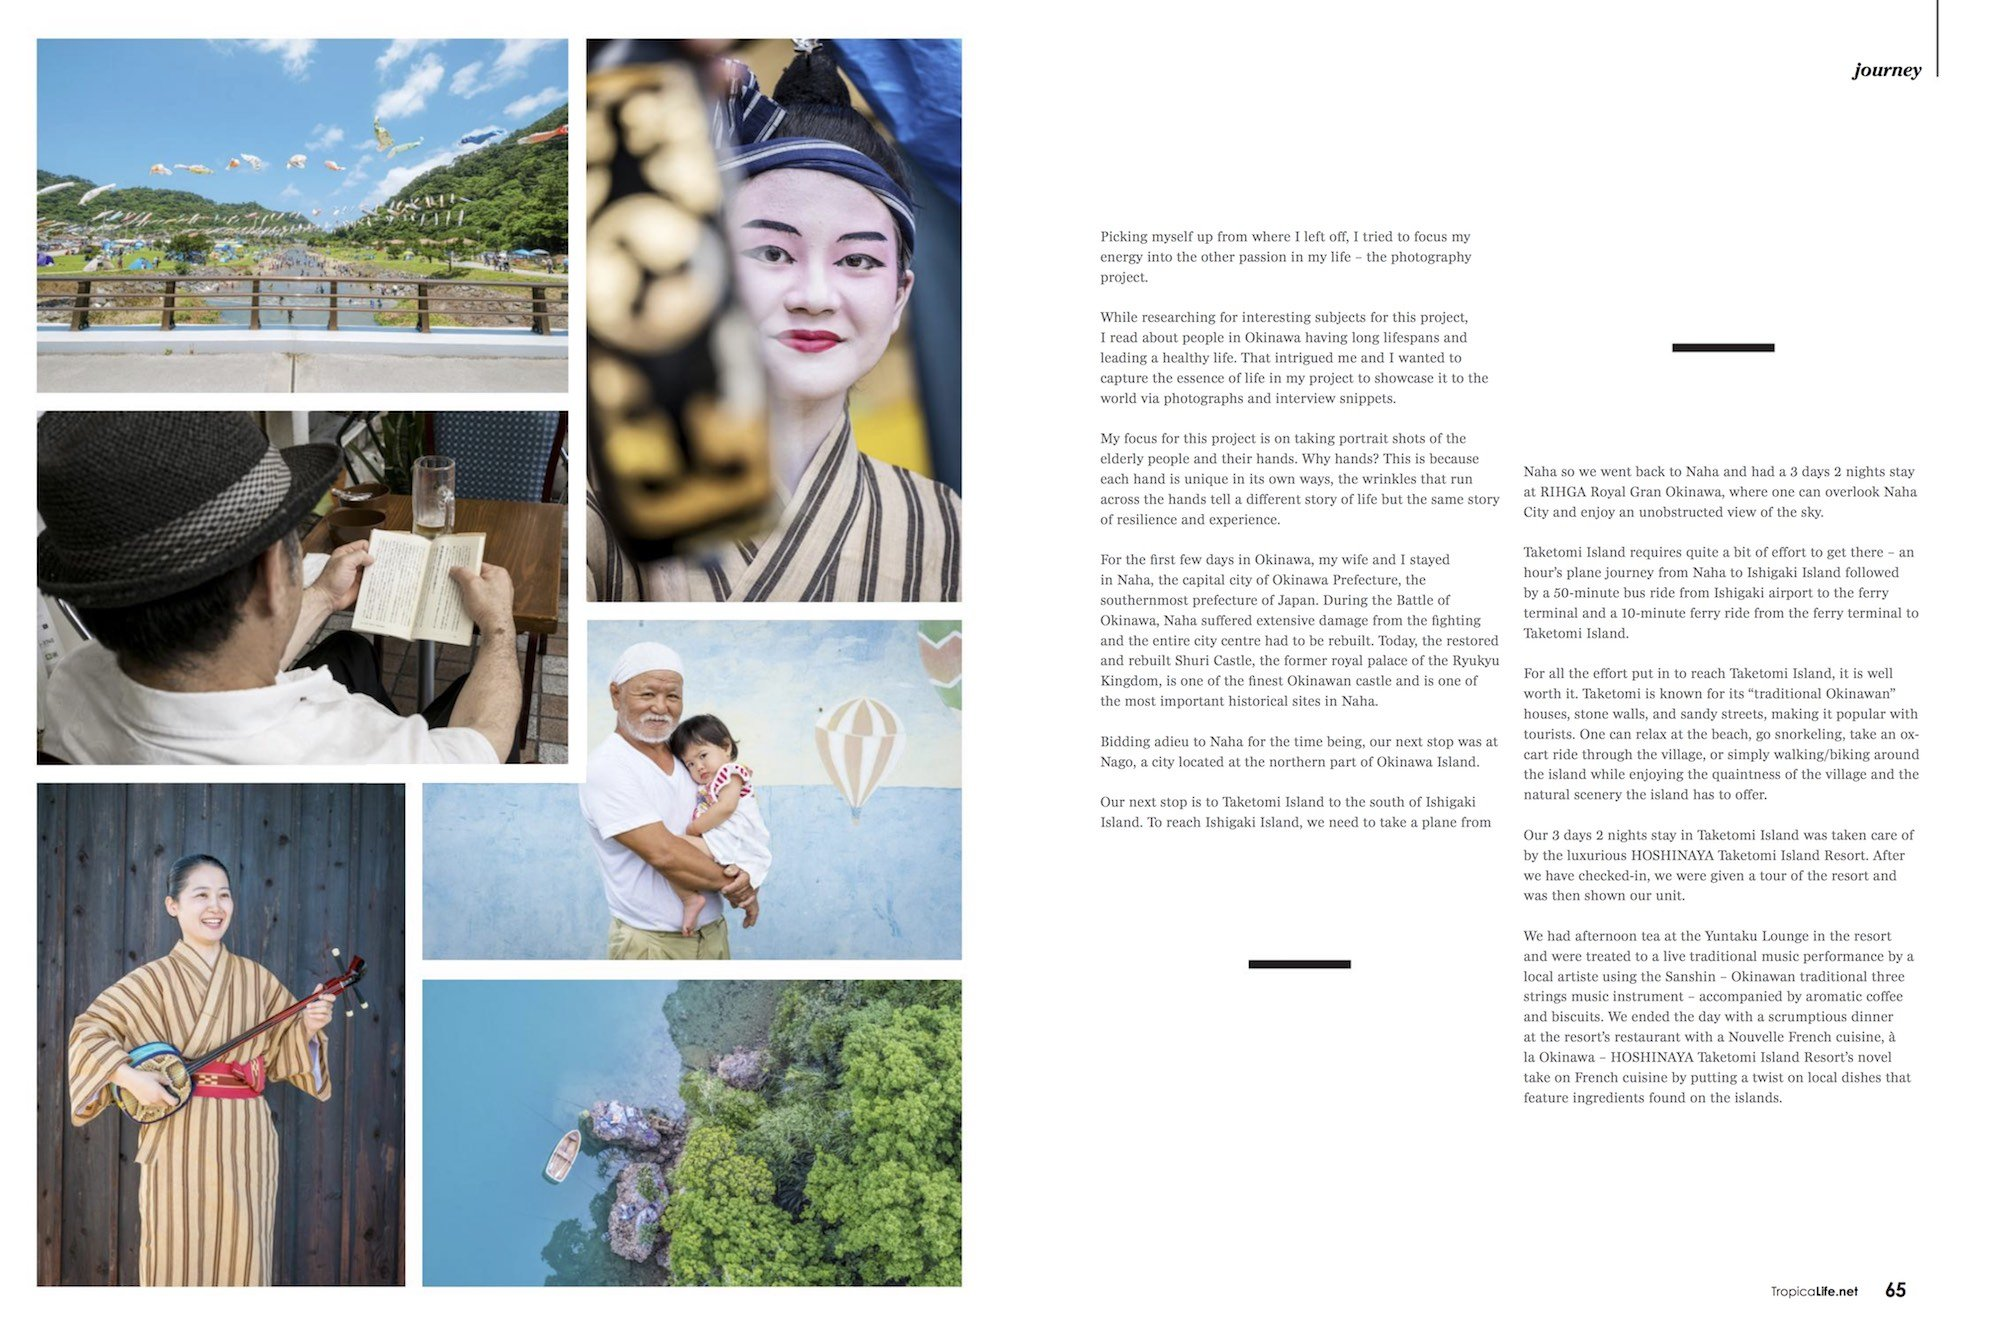 Tropical Life Magazine Travel Journey Okinawa Japan Jose Jeuland photographer Singapore